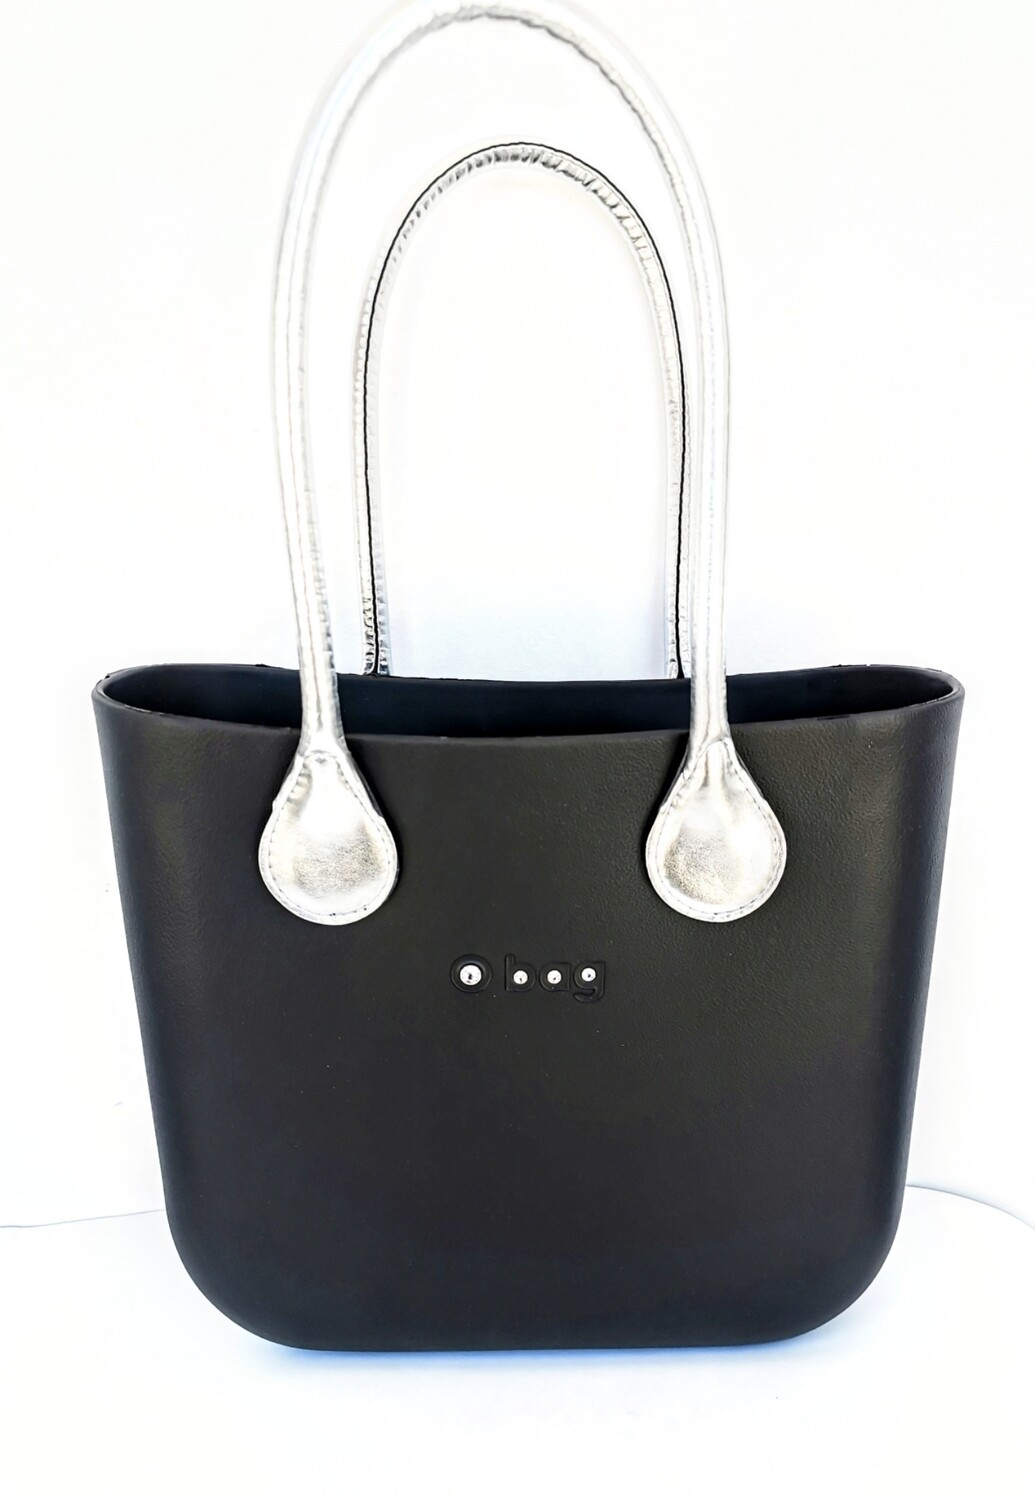 O bag mini with Swarovski crystals and long handles